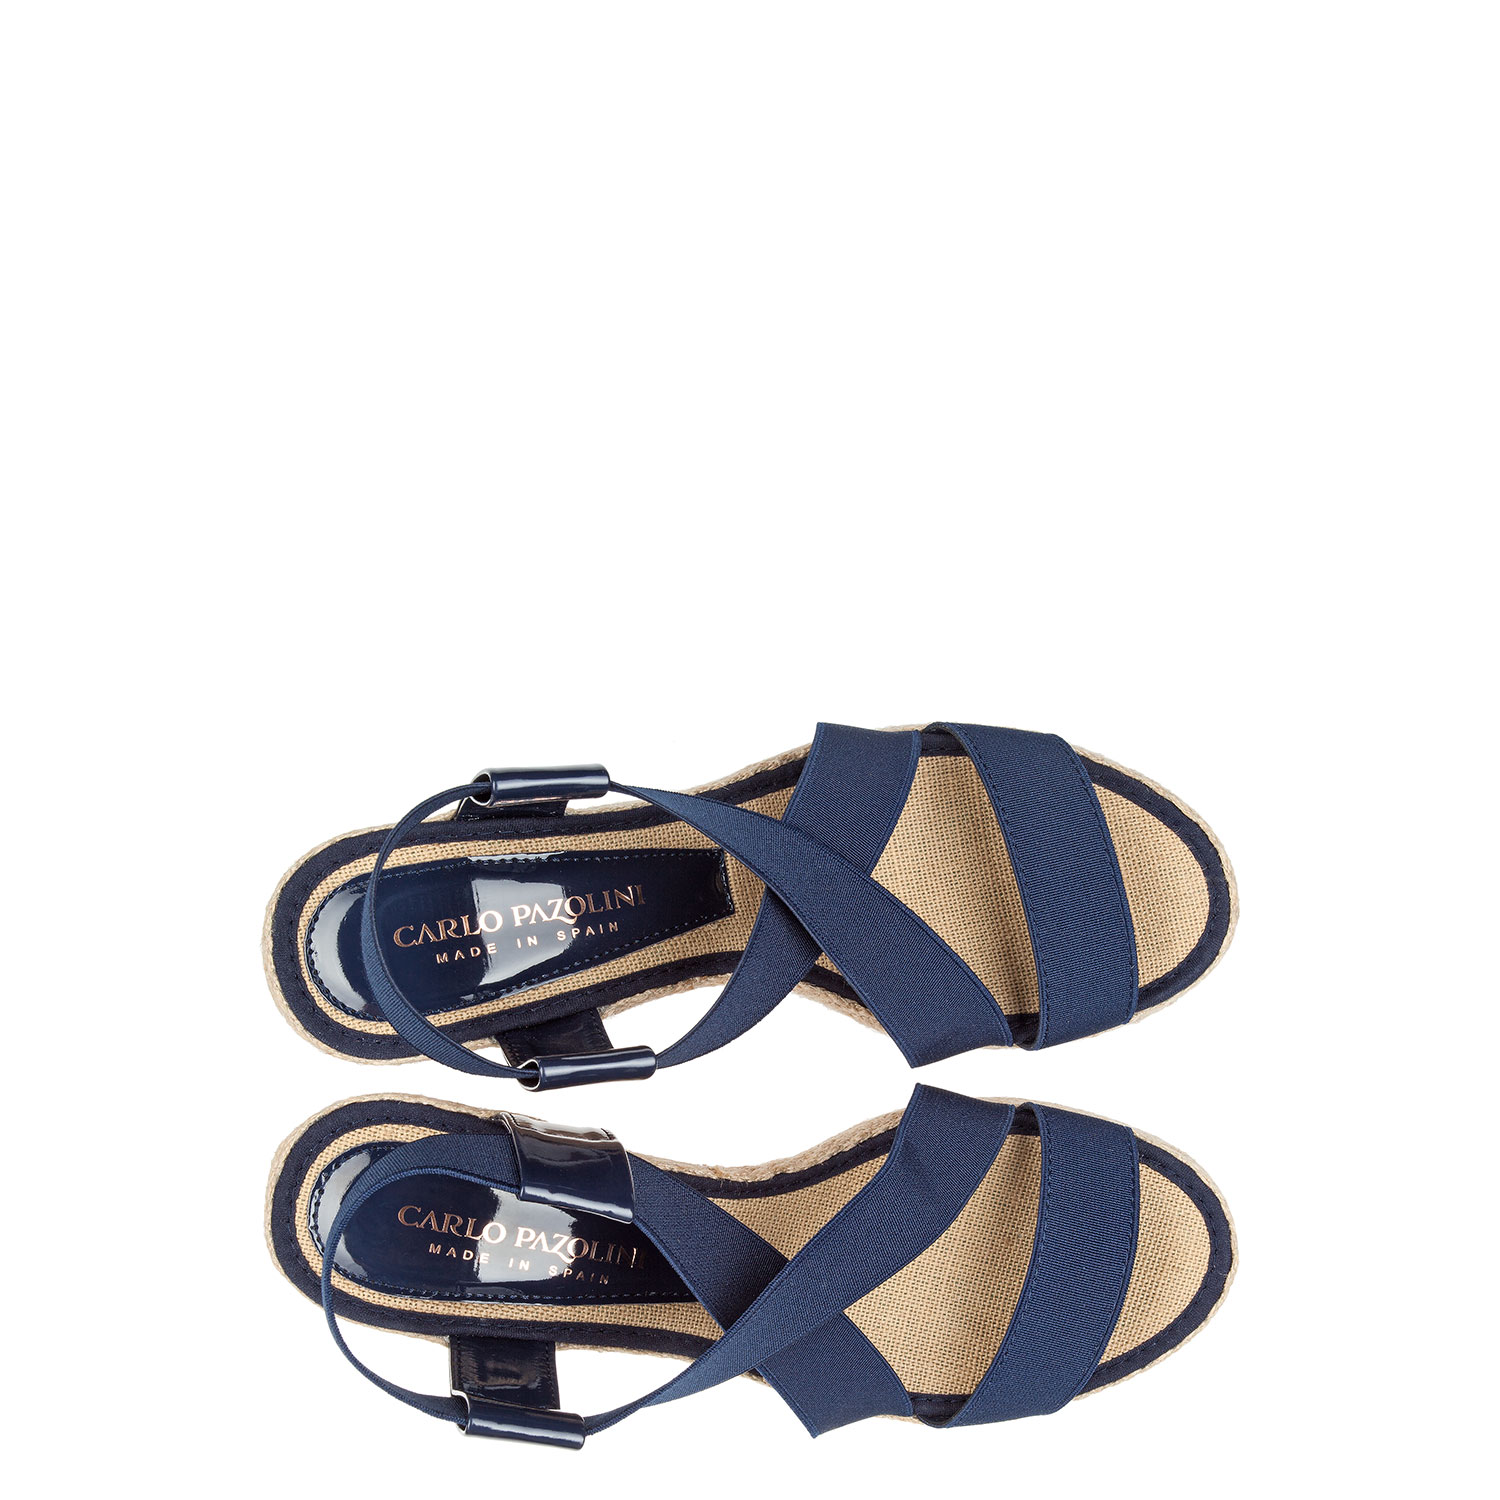 Women's sandals CARLO PAZOLINI CT-X3001-6